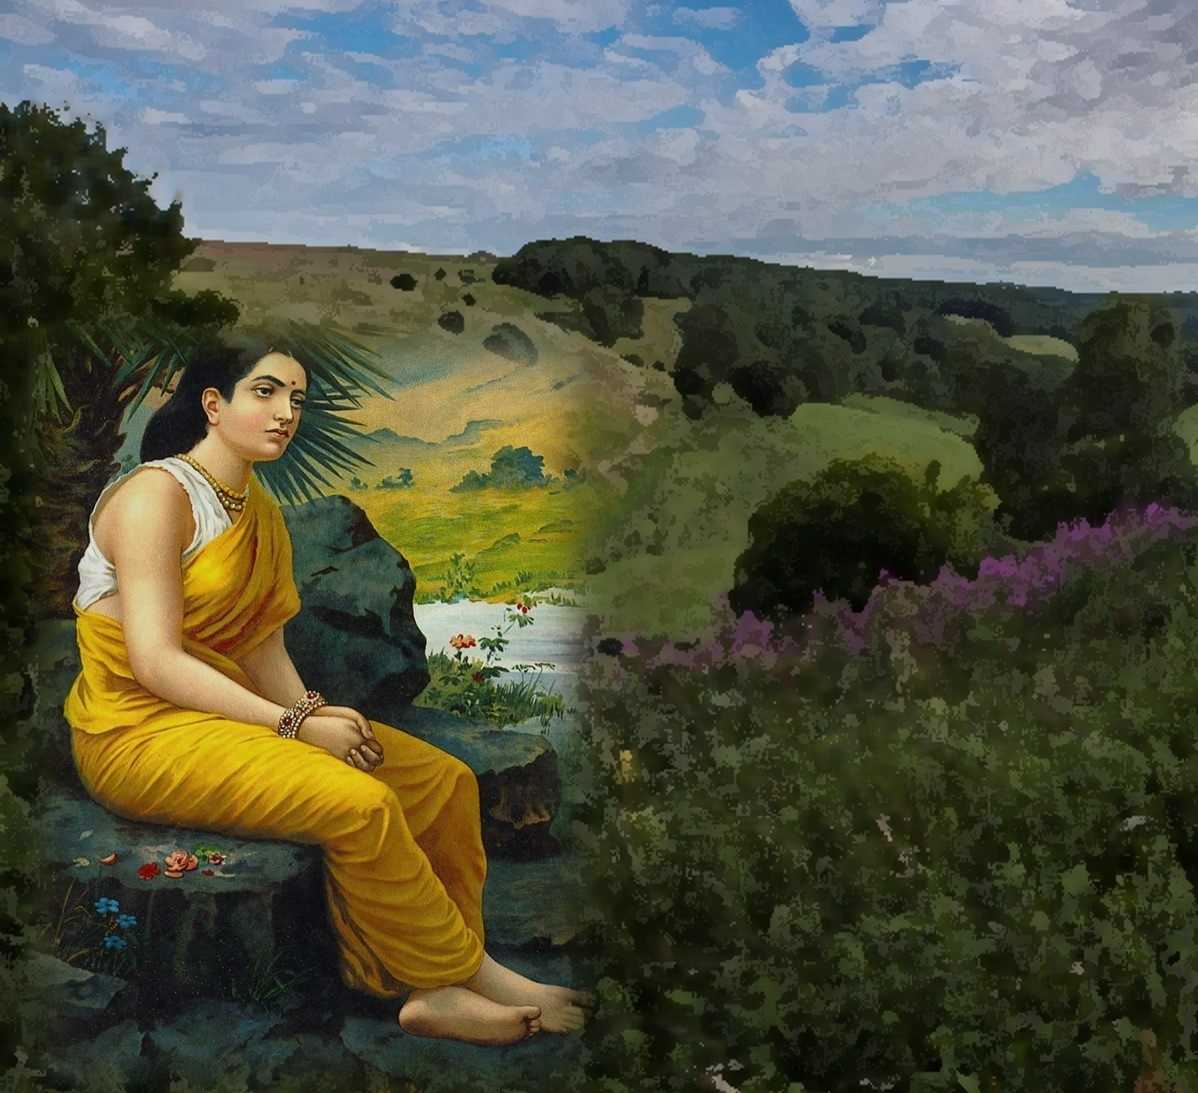 Why Sita had to face all hardships alone in her human avtar?